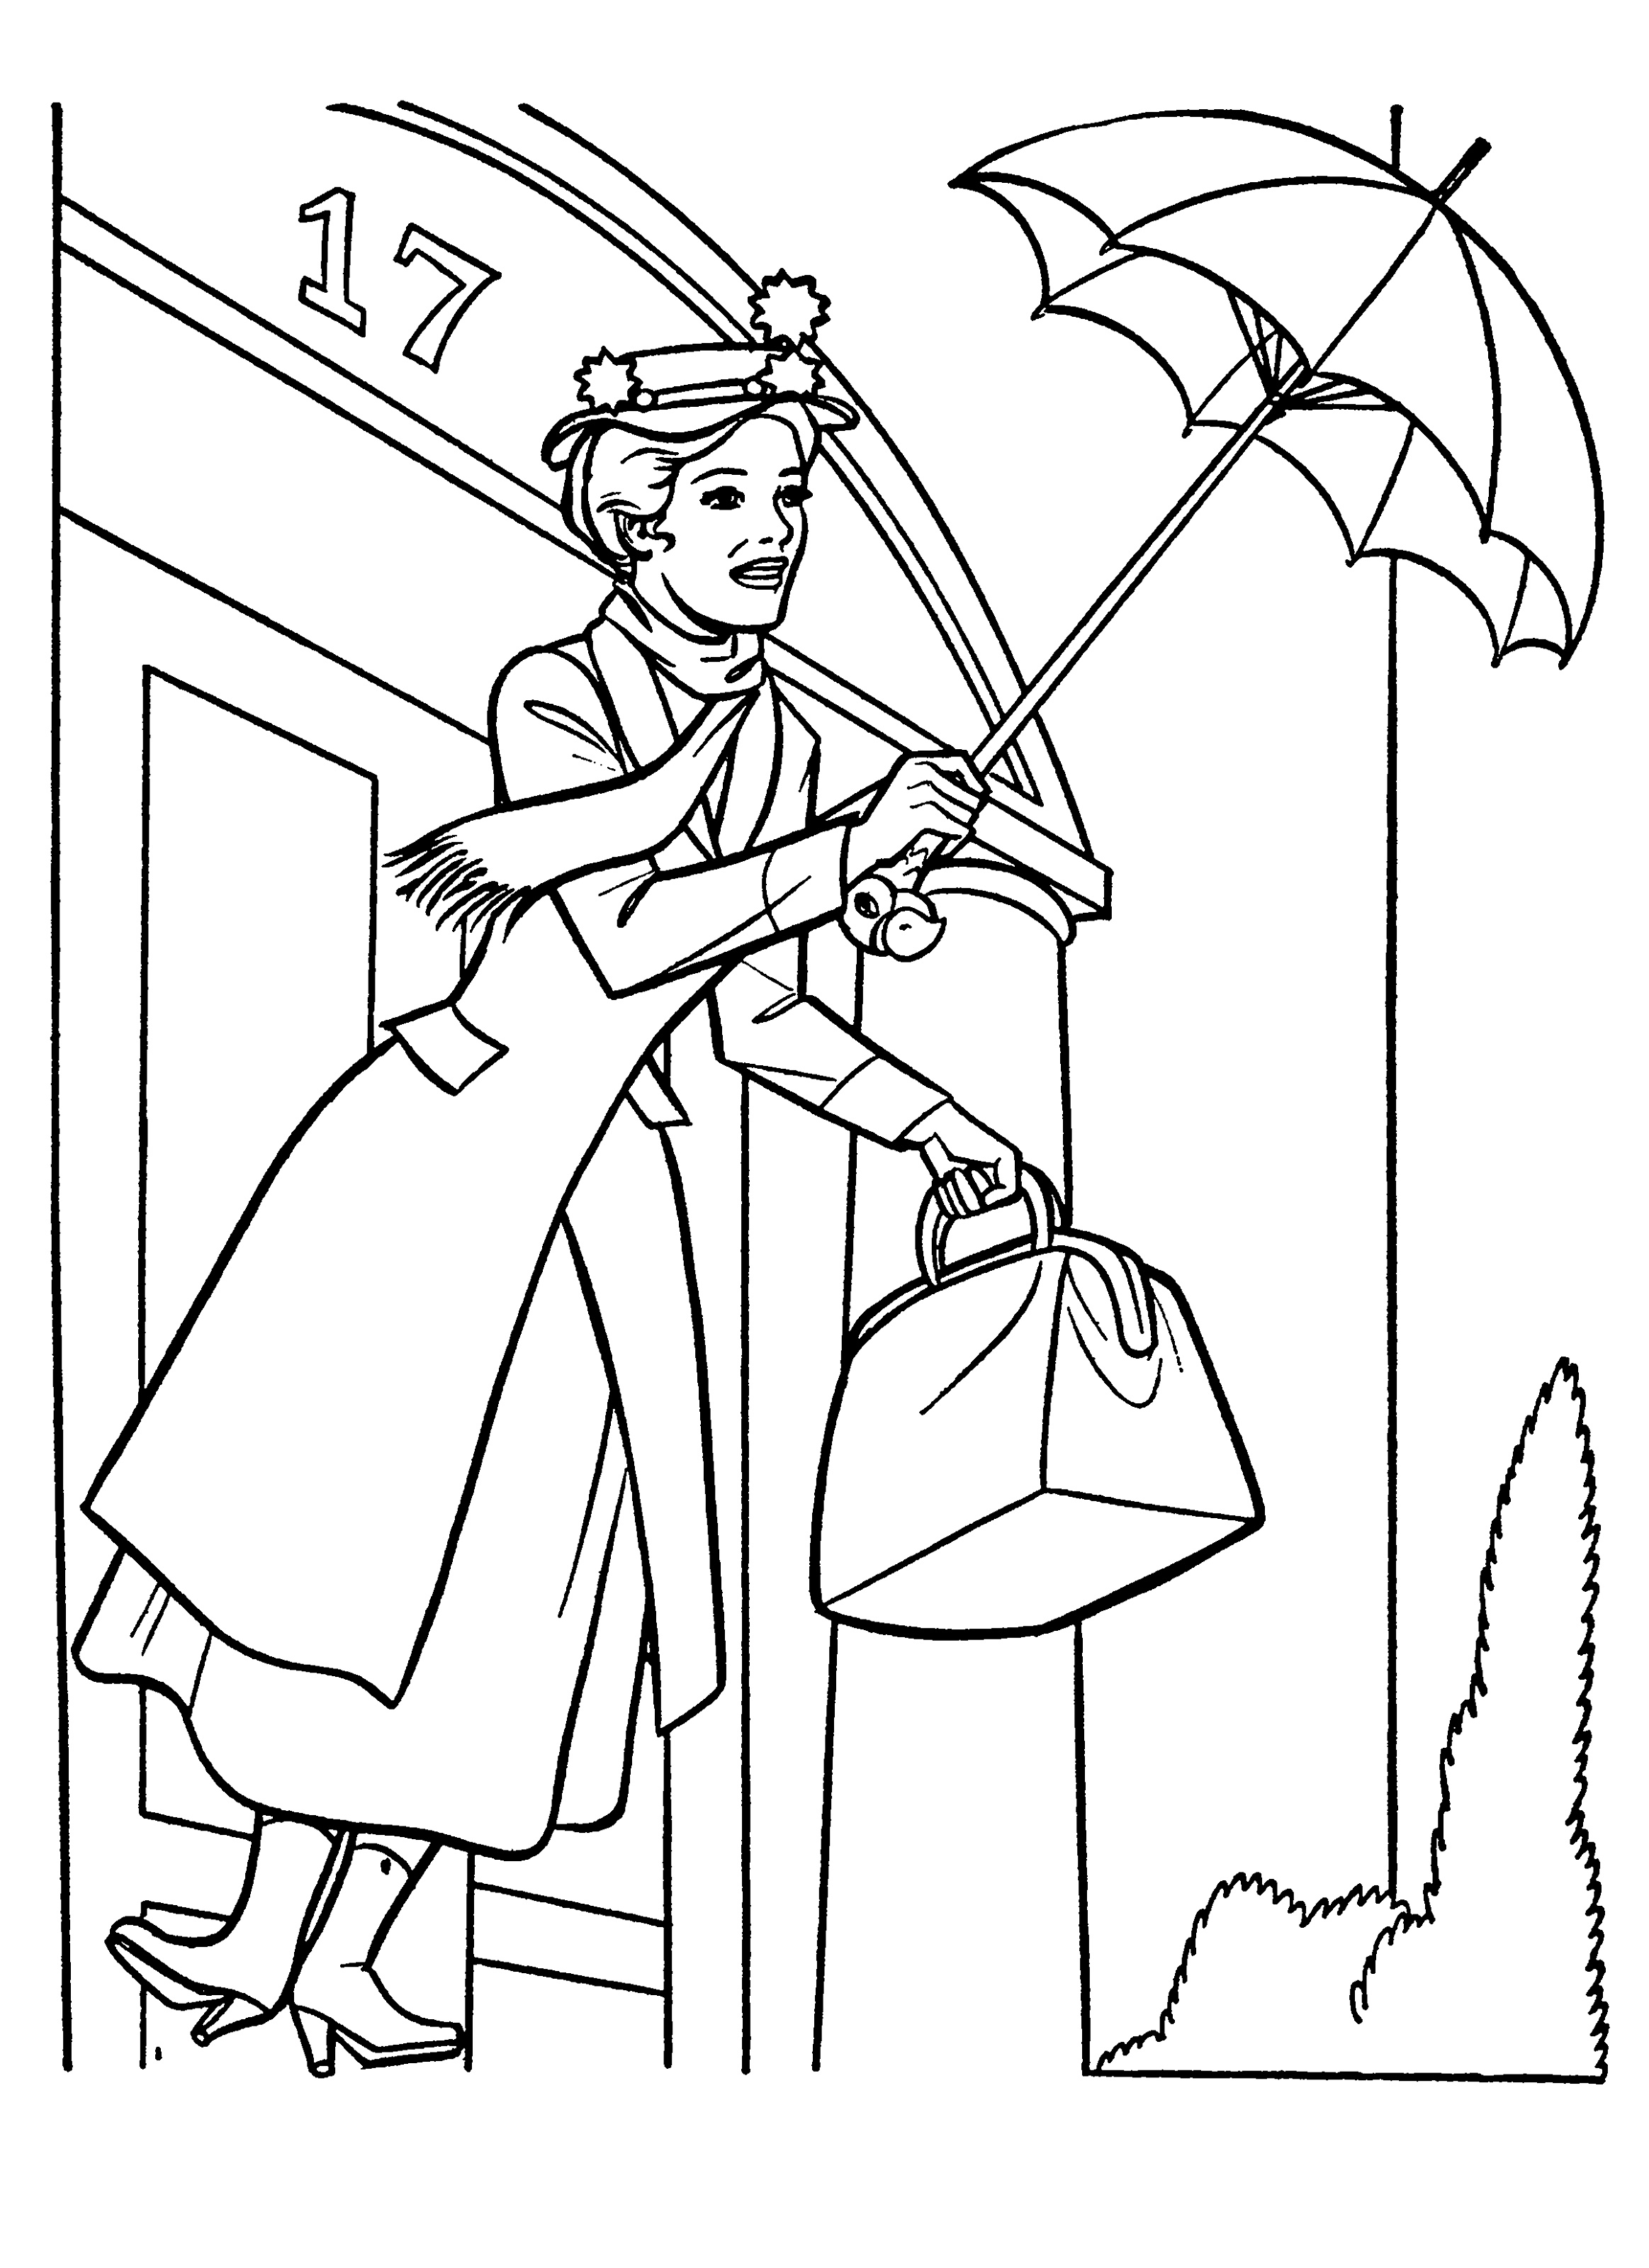 Mary Poppins Coloring Pages Printable | K5 Worksheets